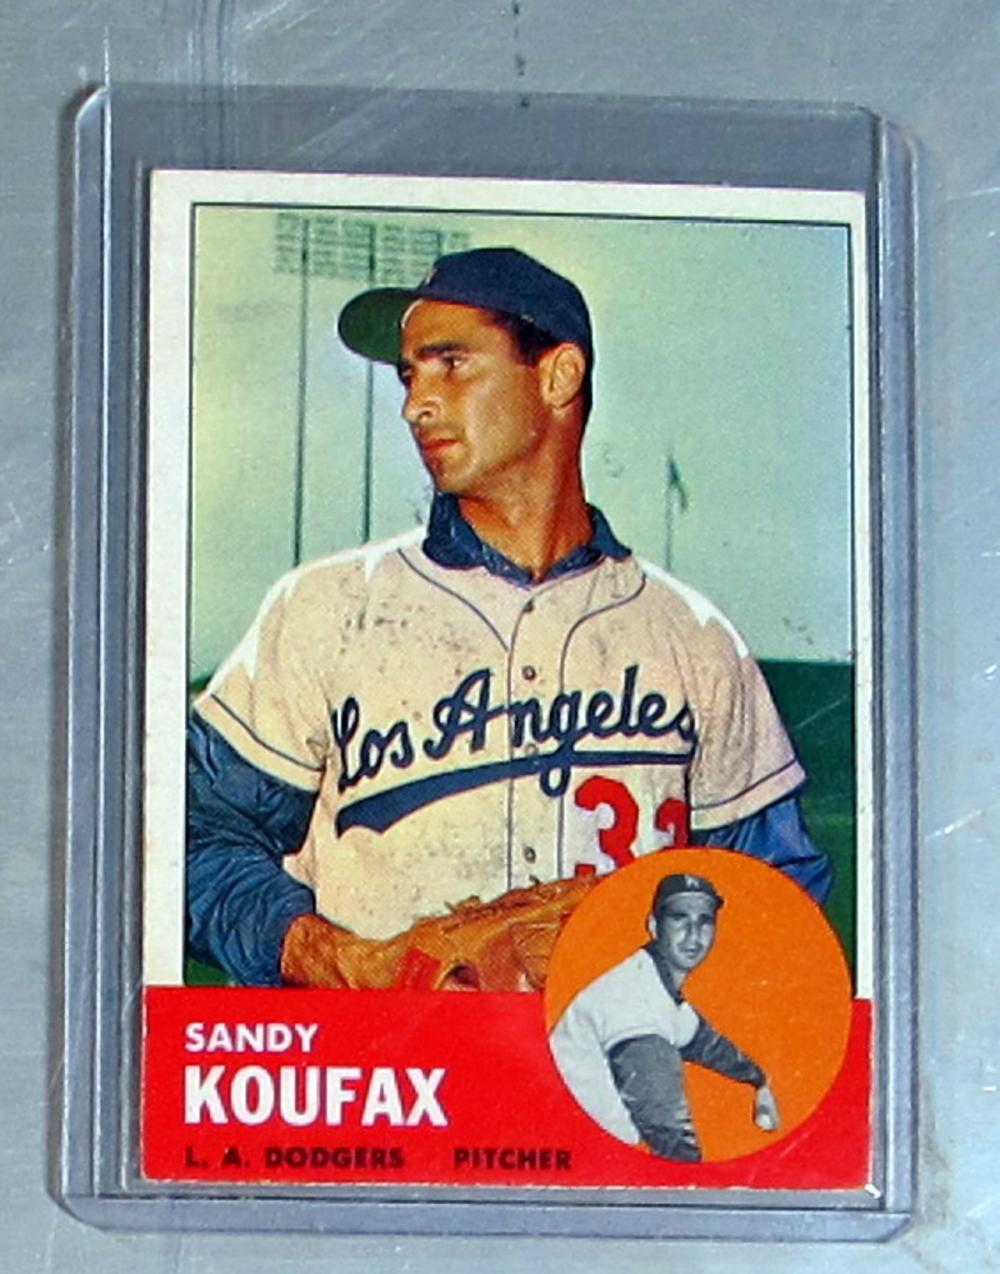 1963 TOPPS BASEBALL CARD 210 SANDY KOUFAX HOF LOS ANGELES DODGERS EX+ EXMT